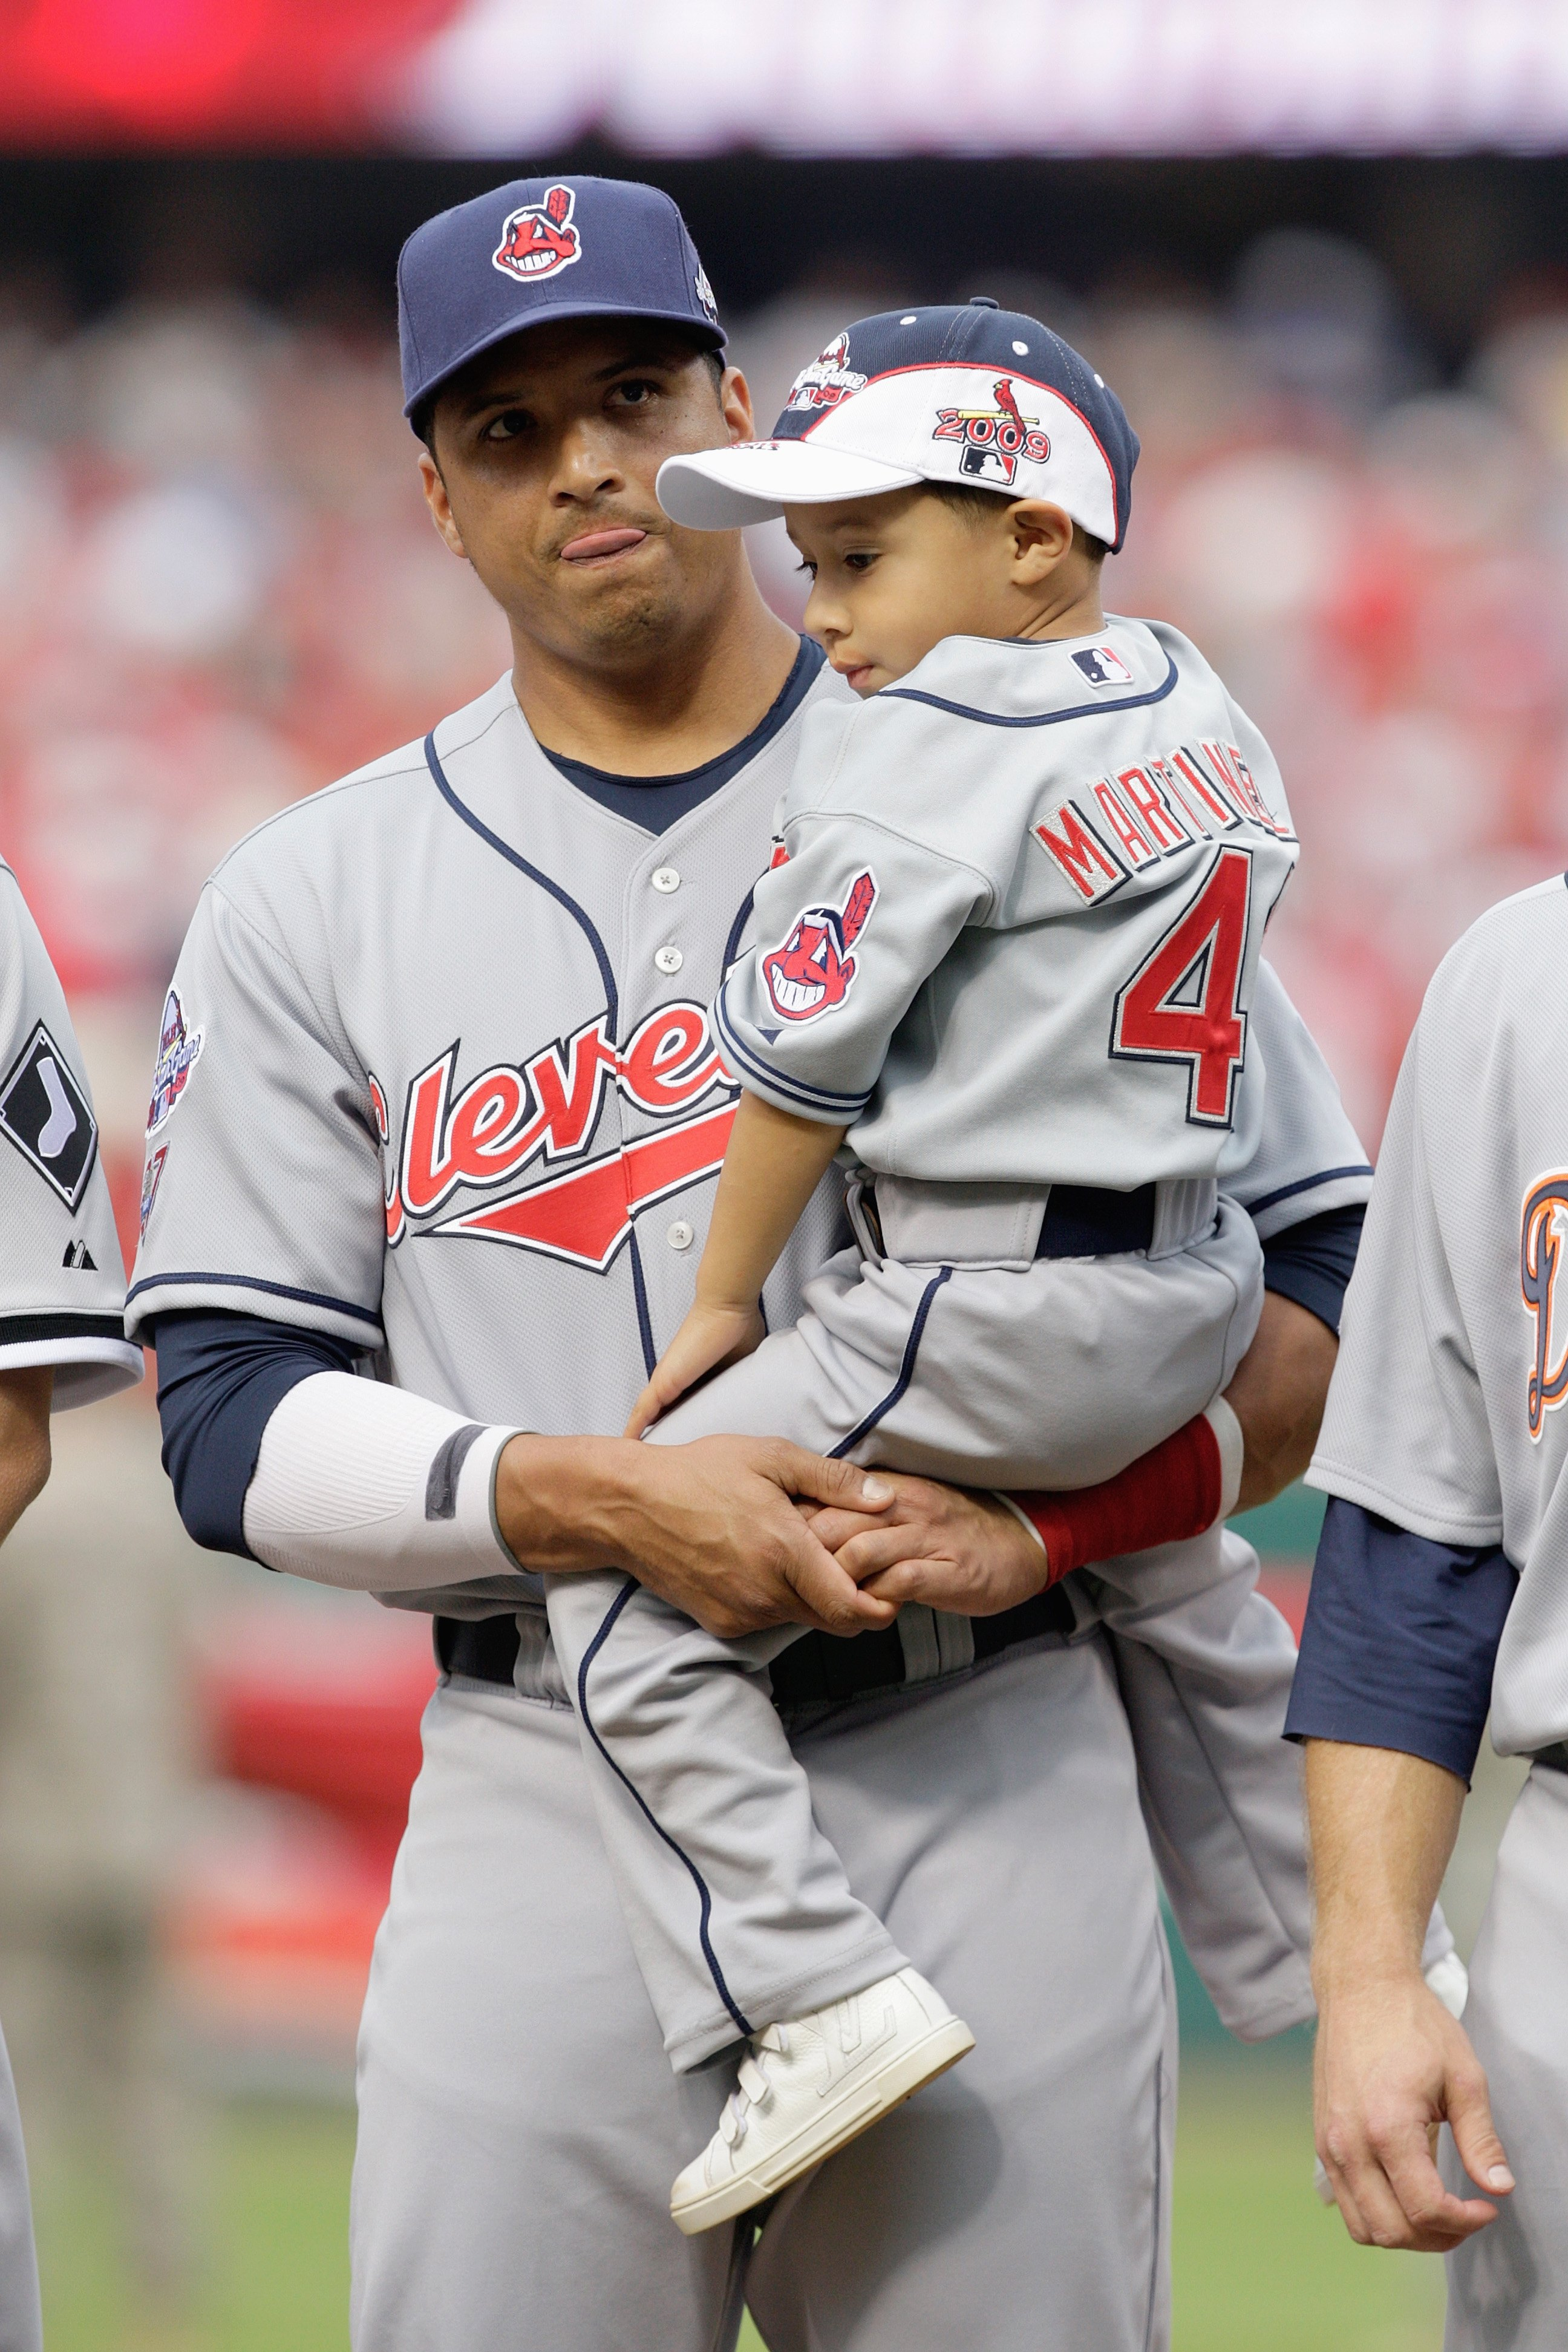 ST. LOUIS, MO - JULY 14: American League All-Star Victor Martinez of Cleveland Indians stands with his son during the lineup before the 2009 MLB All-Star Game at Busch Stadium on July 14, 2009 in St Louis, Missouri. (Photo by Pool/Getty Images)